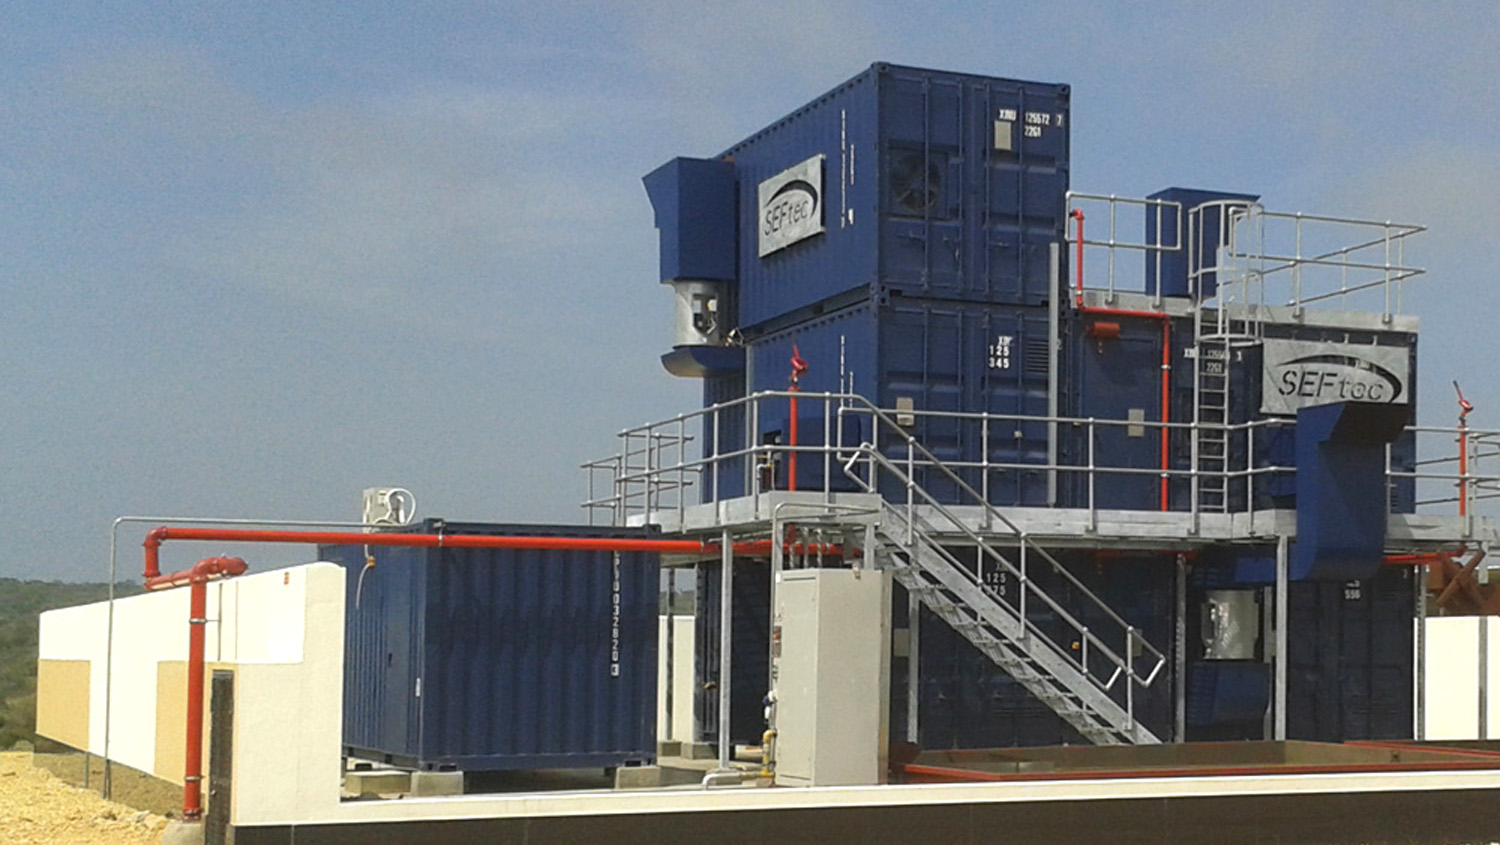 Modular fire training stacks (OPITO/STCW)